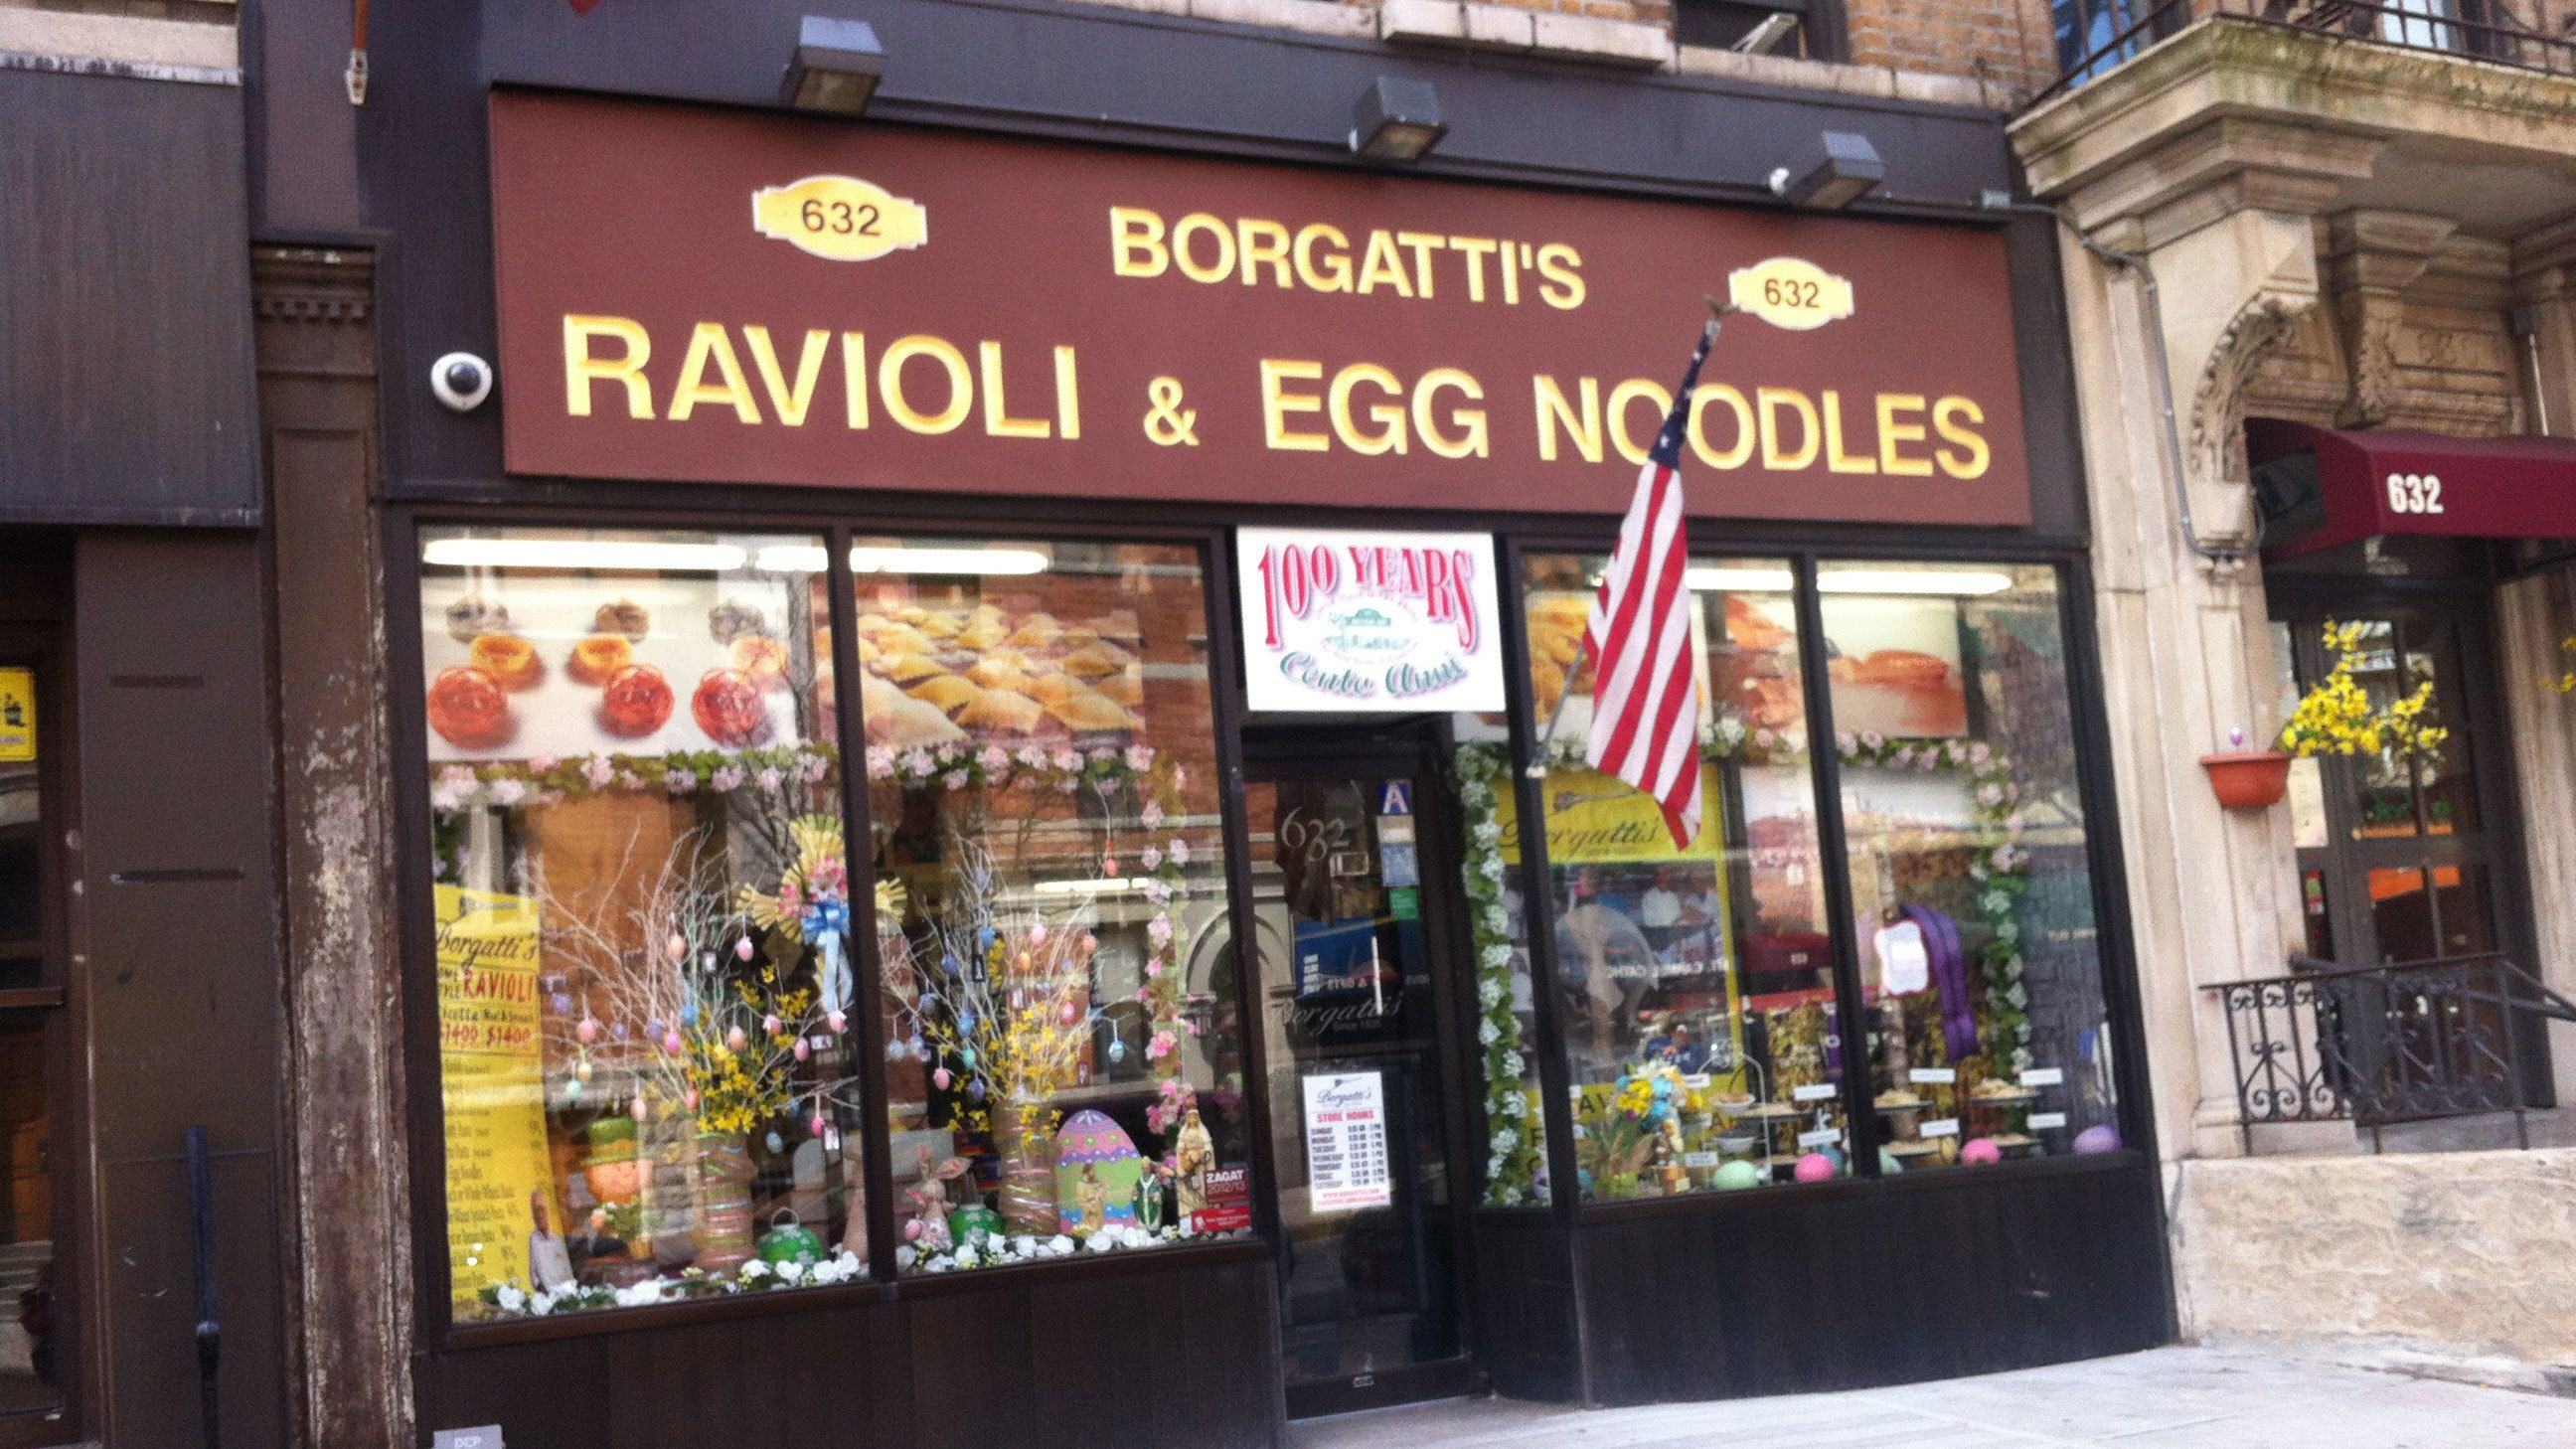 Noodle shop storefront in Little Italy New York